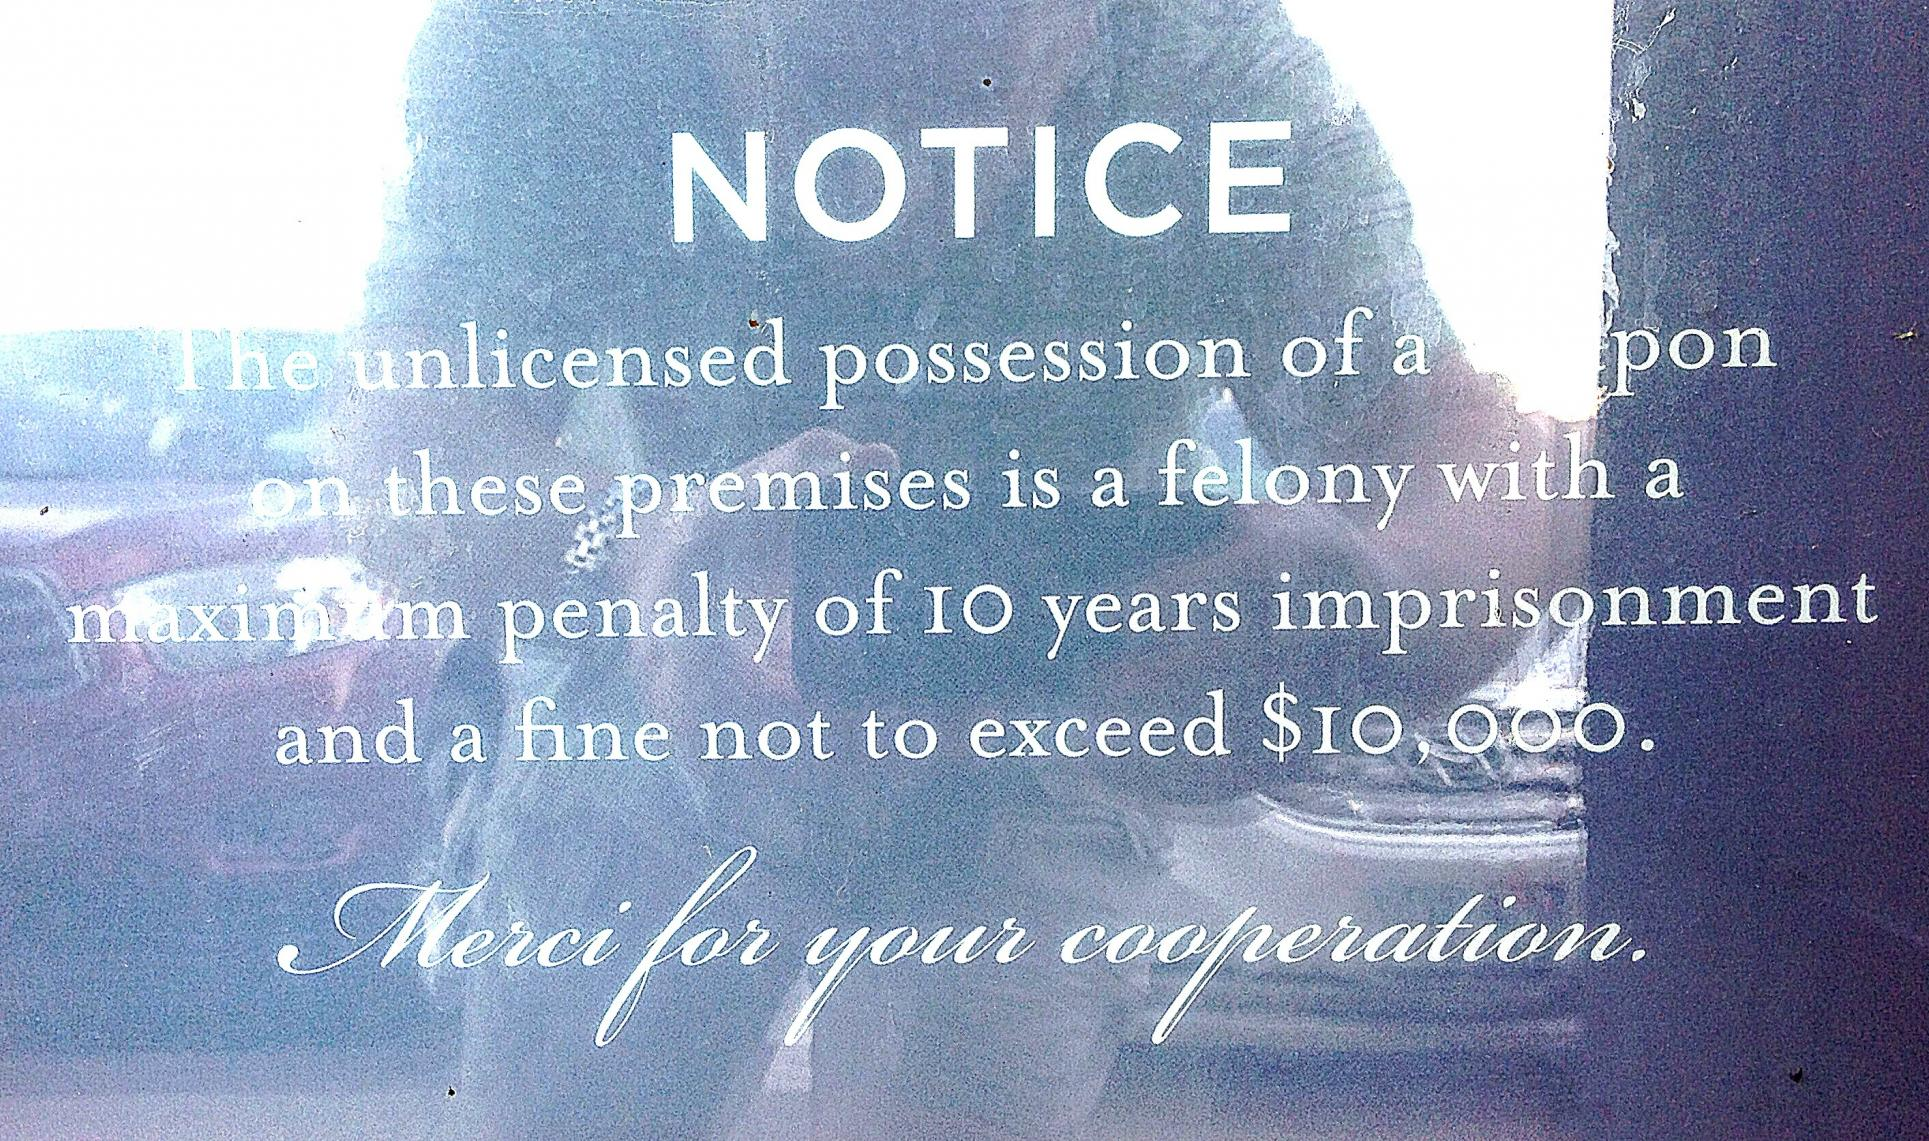 Is THIS Enforceable????-image.jpg